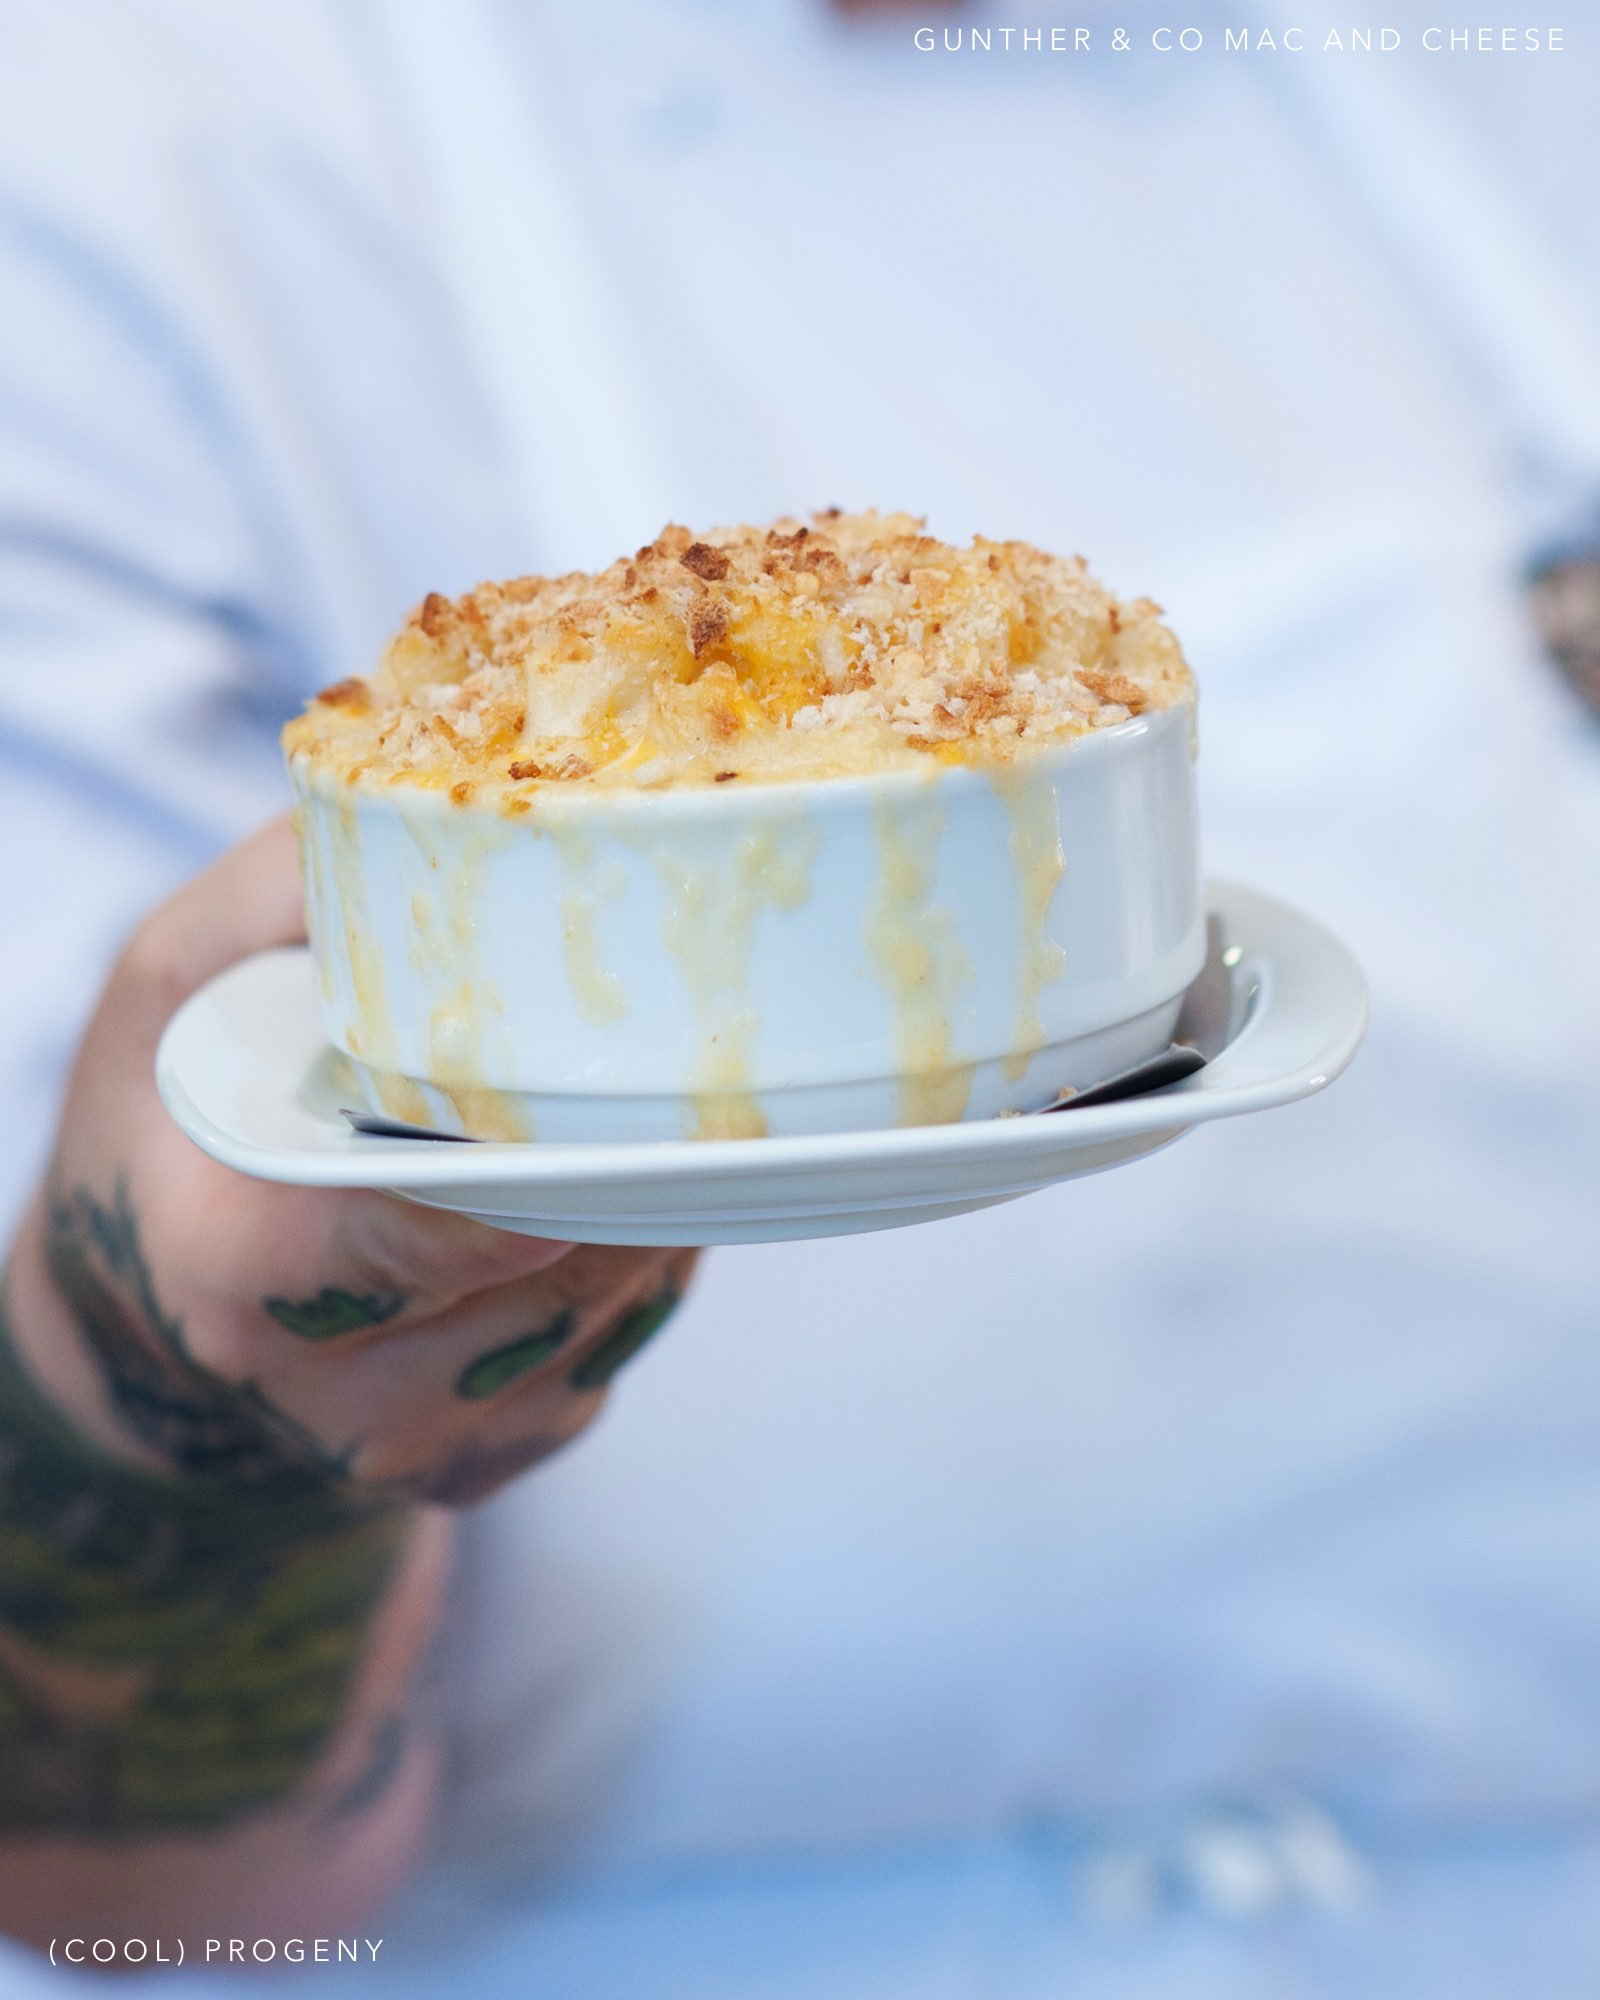 Mac and Cheese from Gunther & Co - (cool) progeny